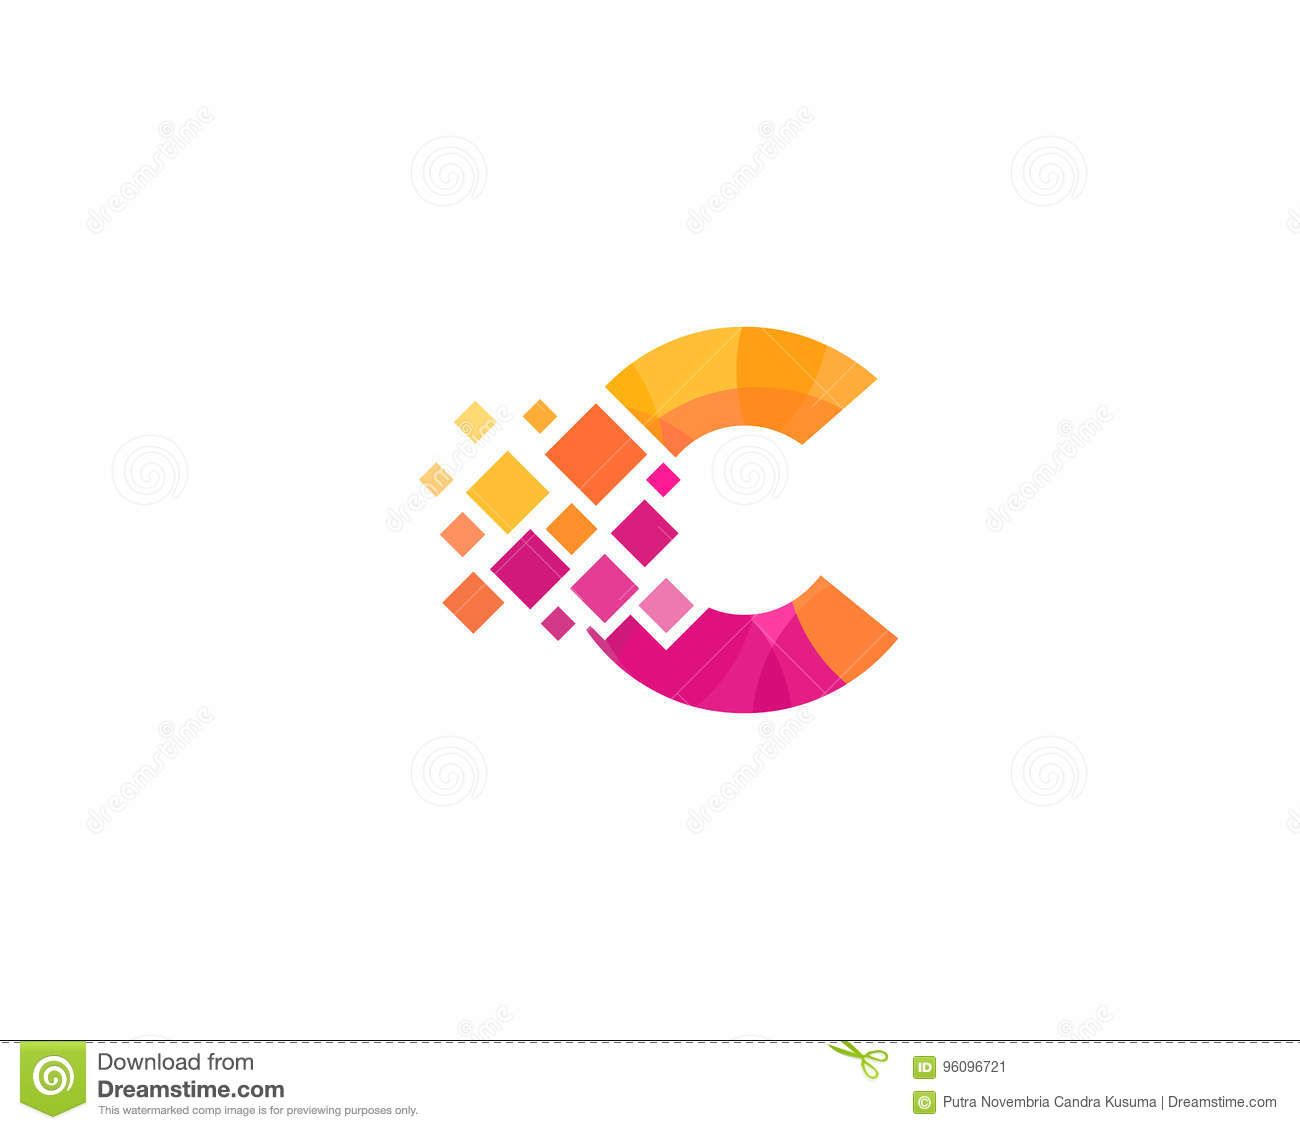 Cpixel Com Sign In